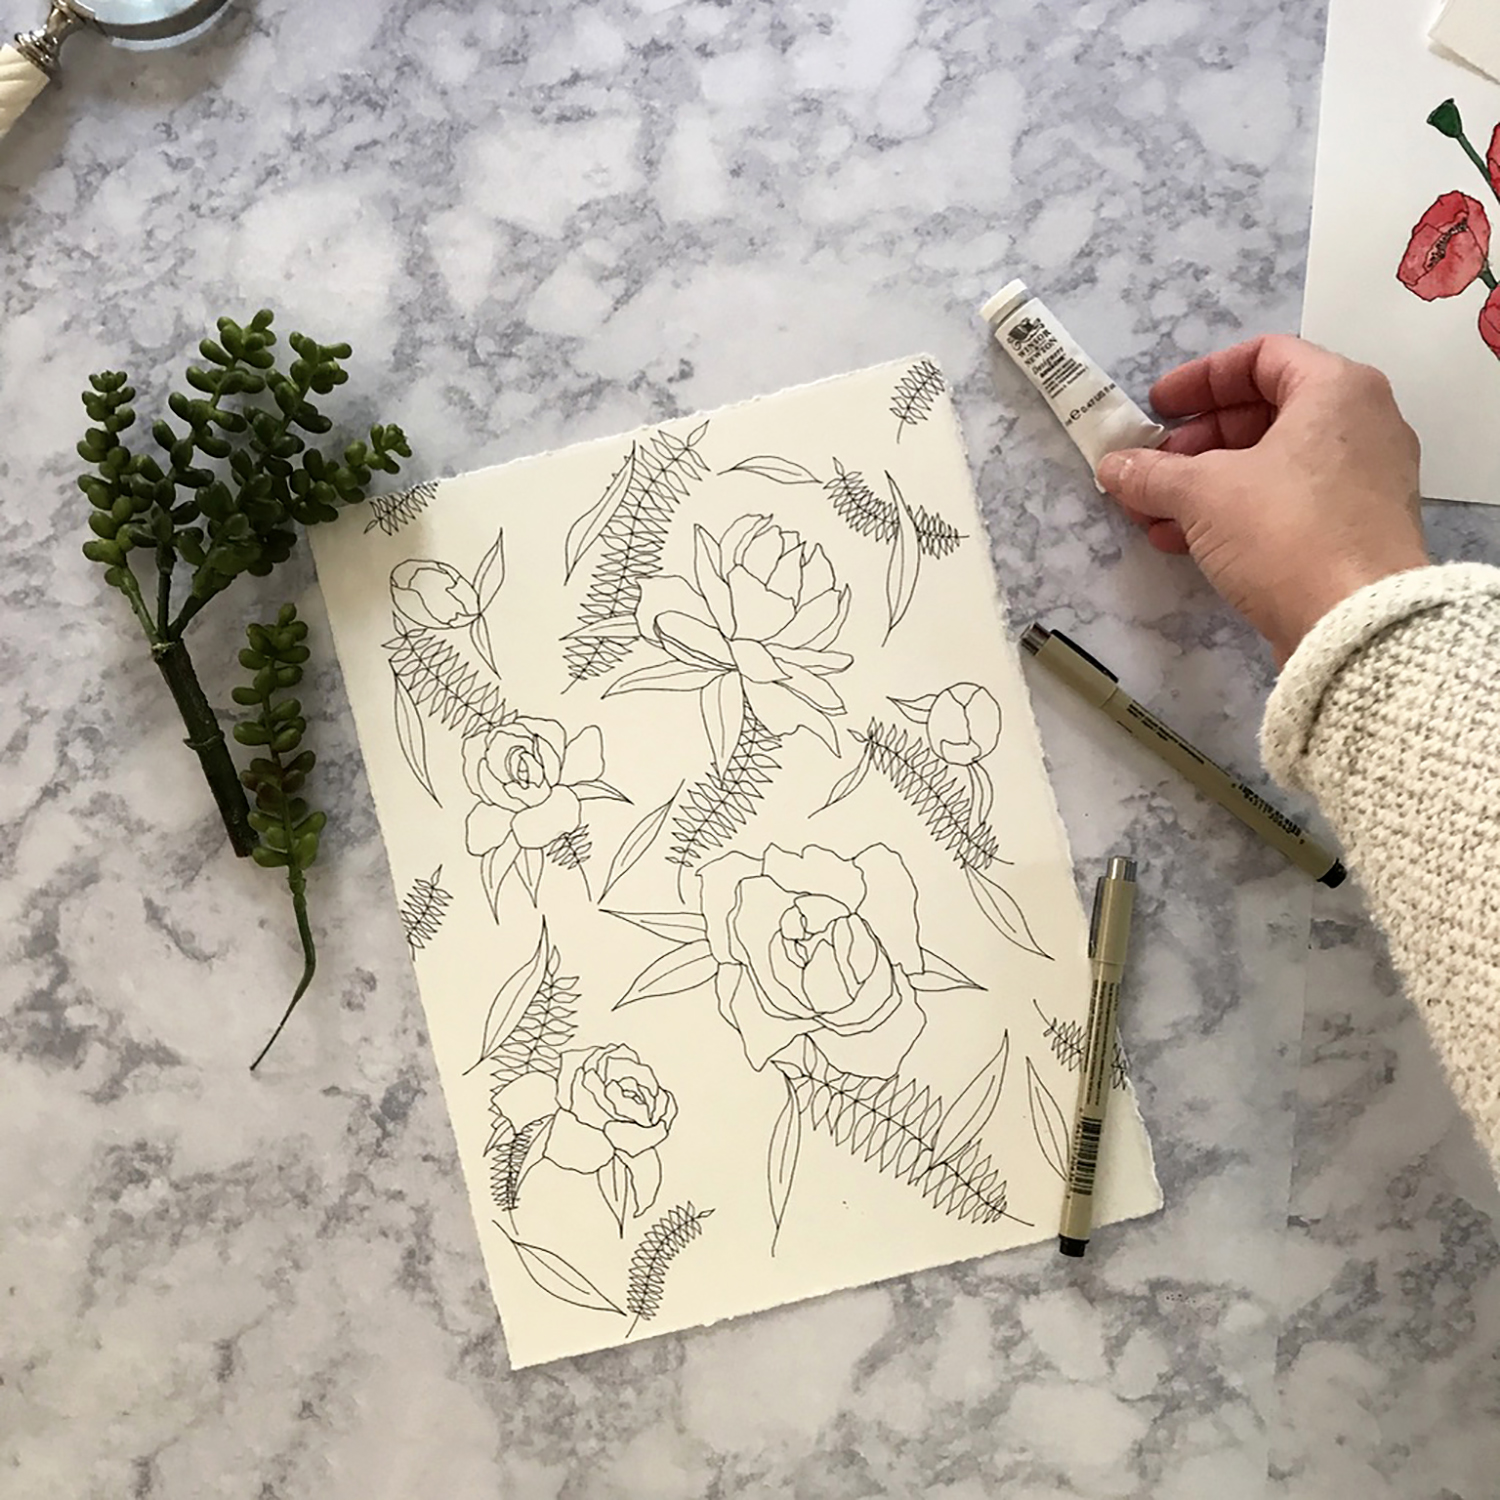 How to style flatflay photos of your artwork or products - tips & tricks for showcasing your work for listing images, marketing, and social media use, from danielleandco.com